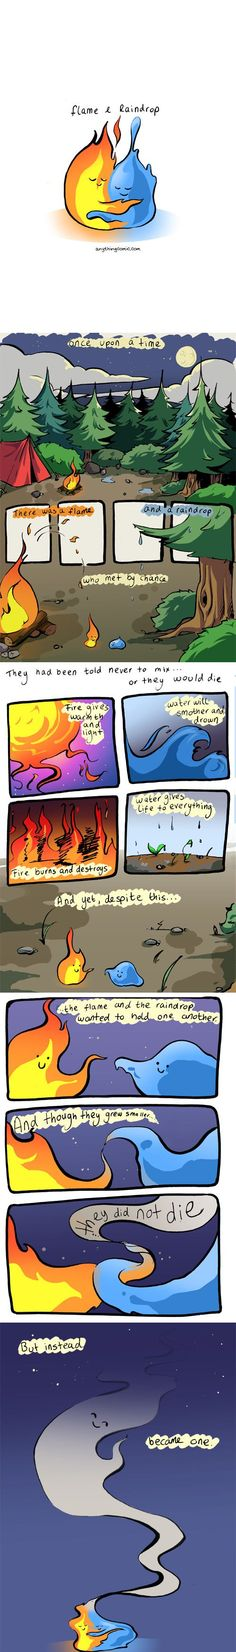 Anything about nothing :: Comics - The Flame and the Raindrop...